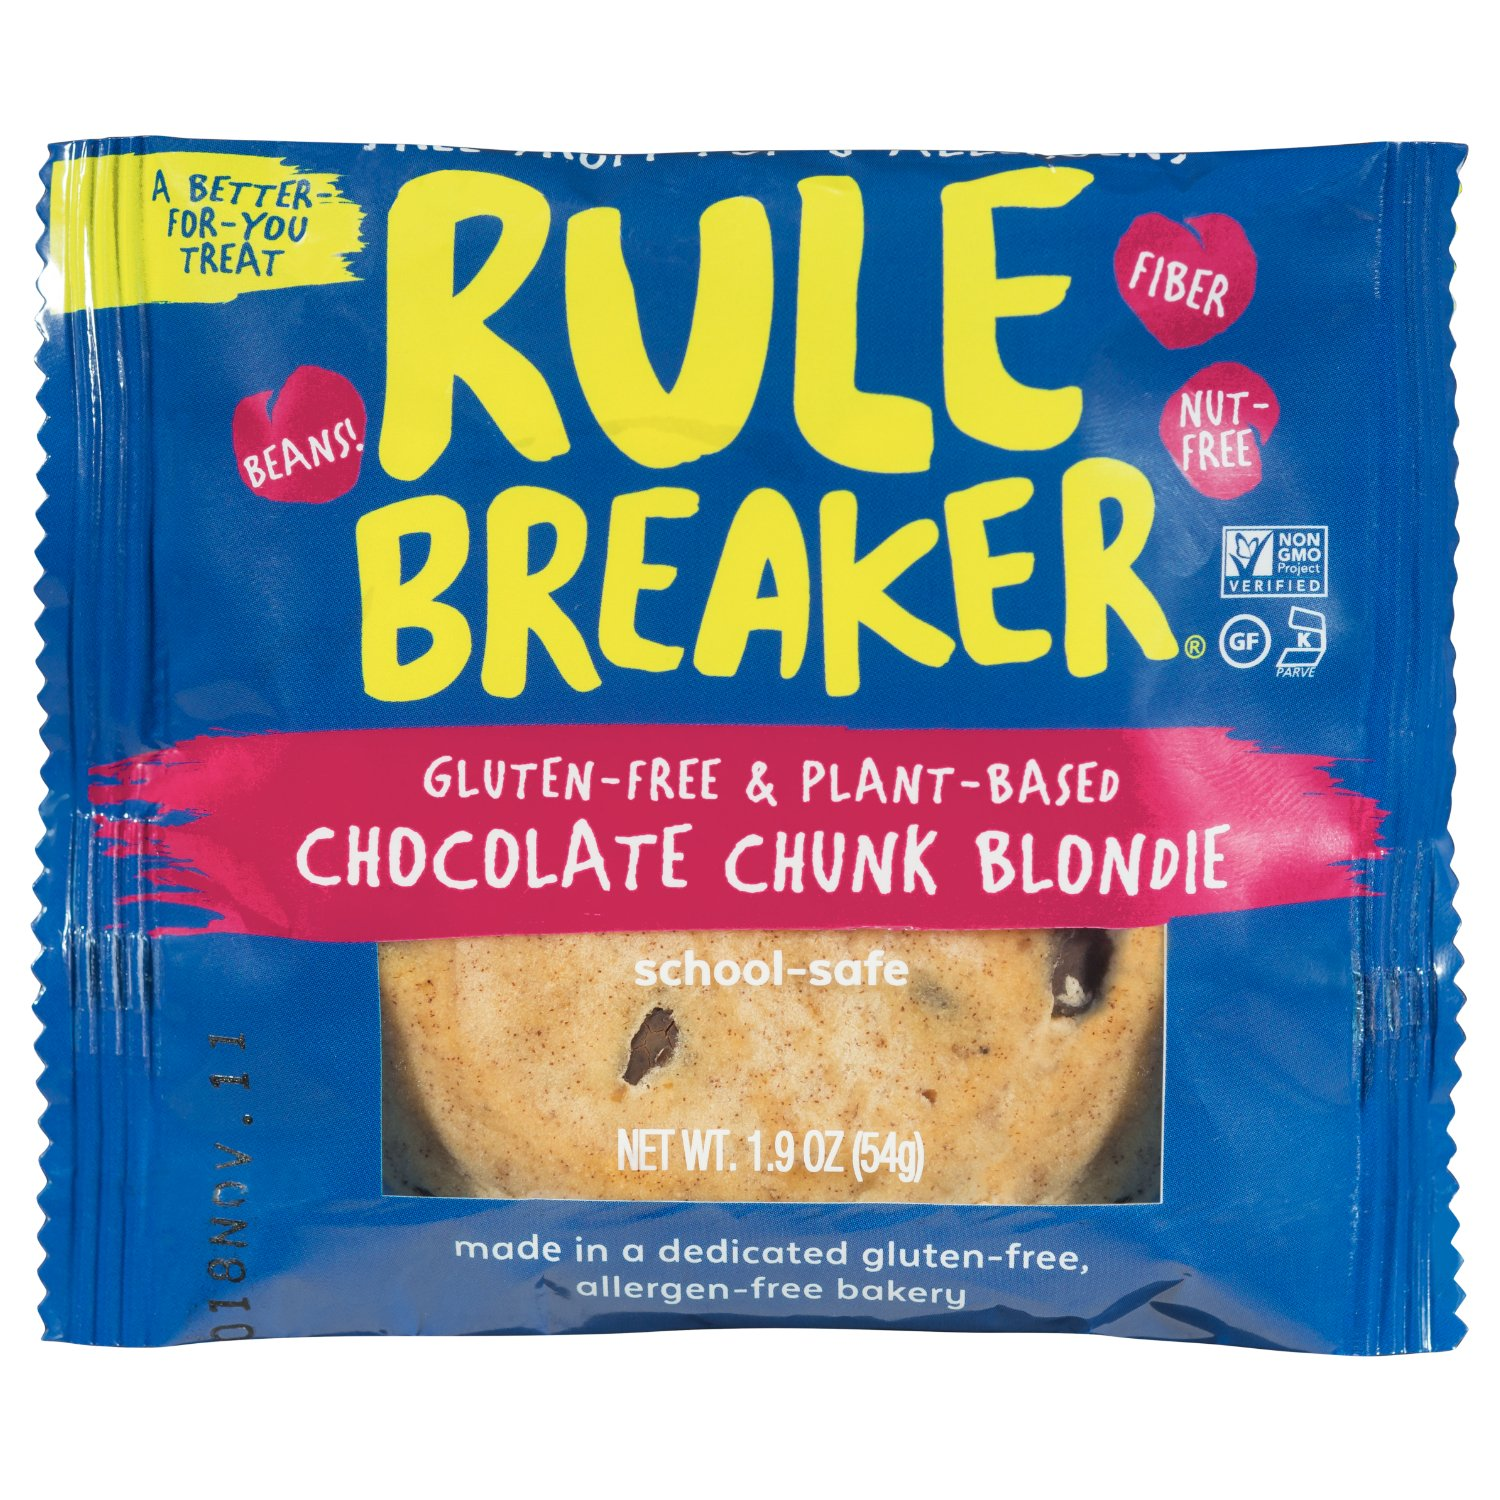 Rule Breaker Chocolate Chunk Blondie